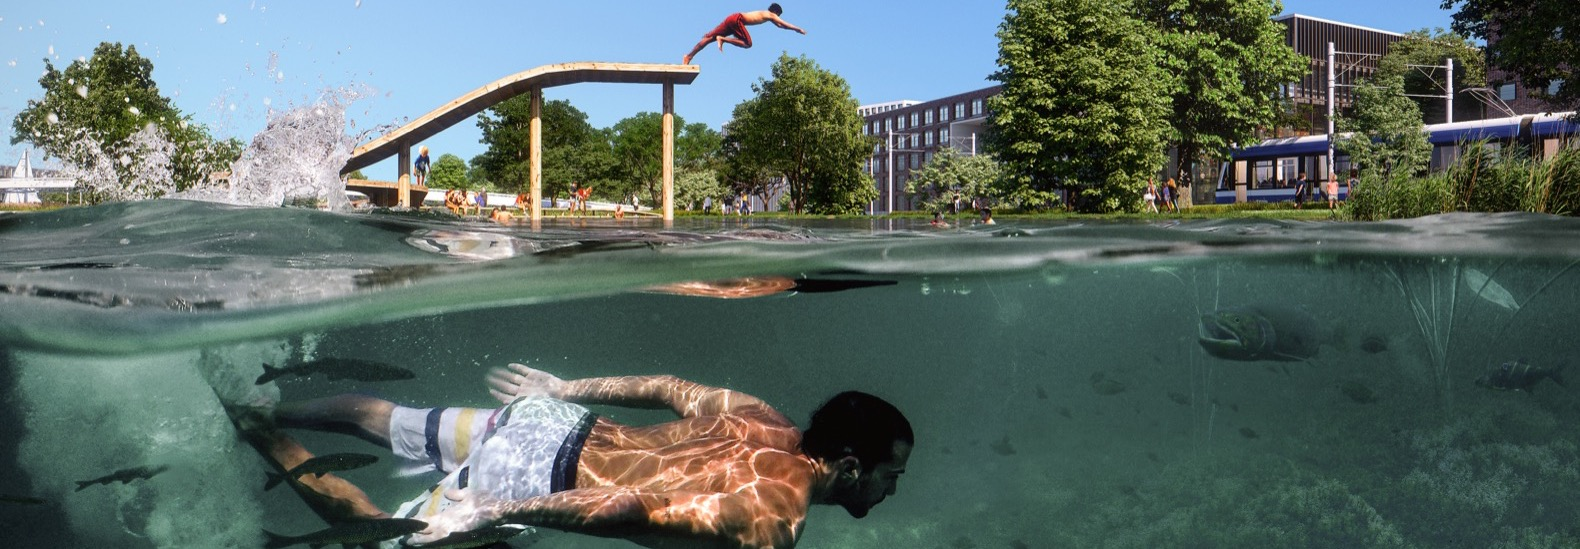 This city park in Amsterdam could help purify local water